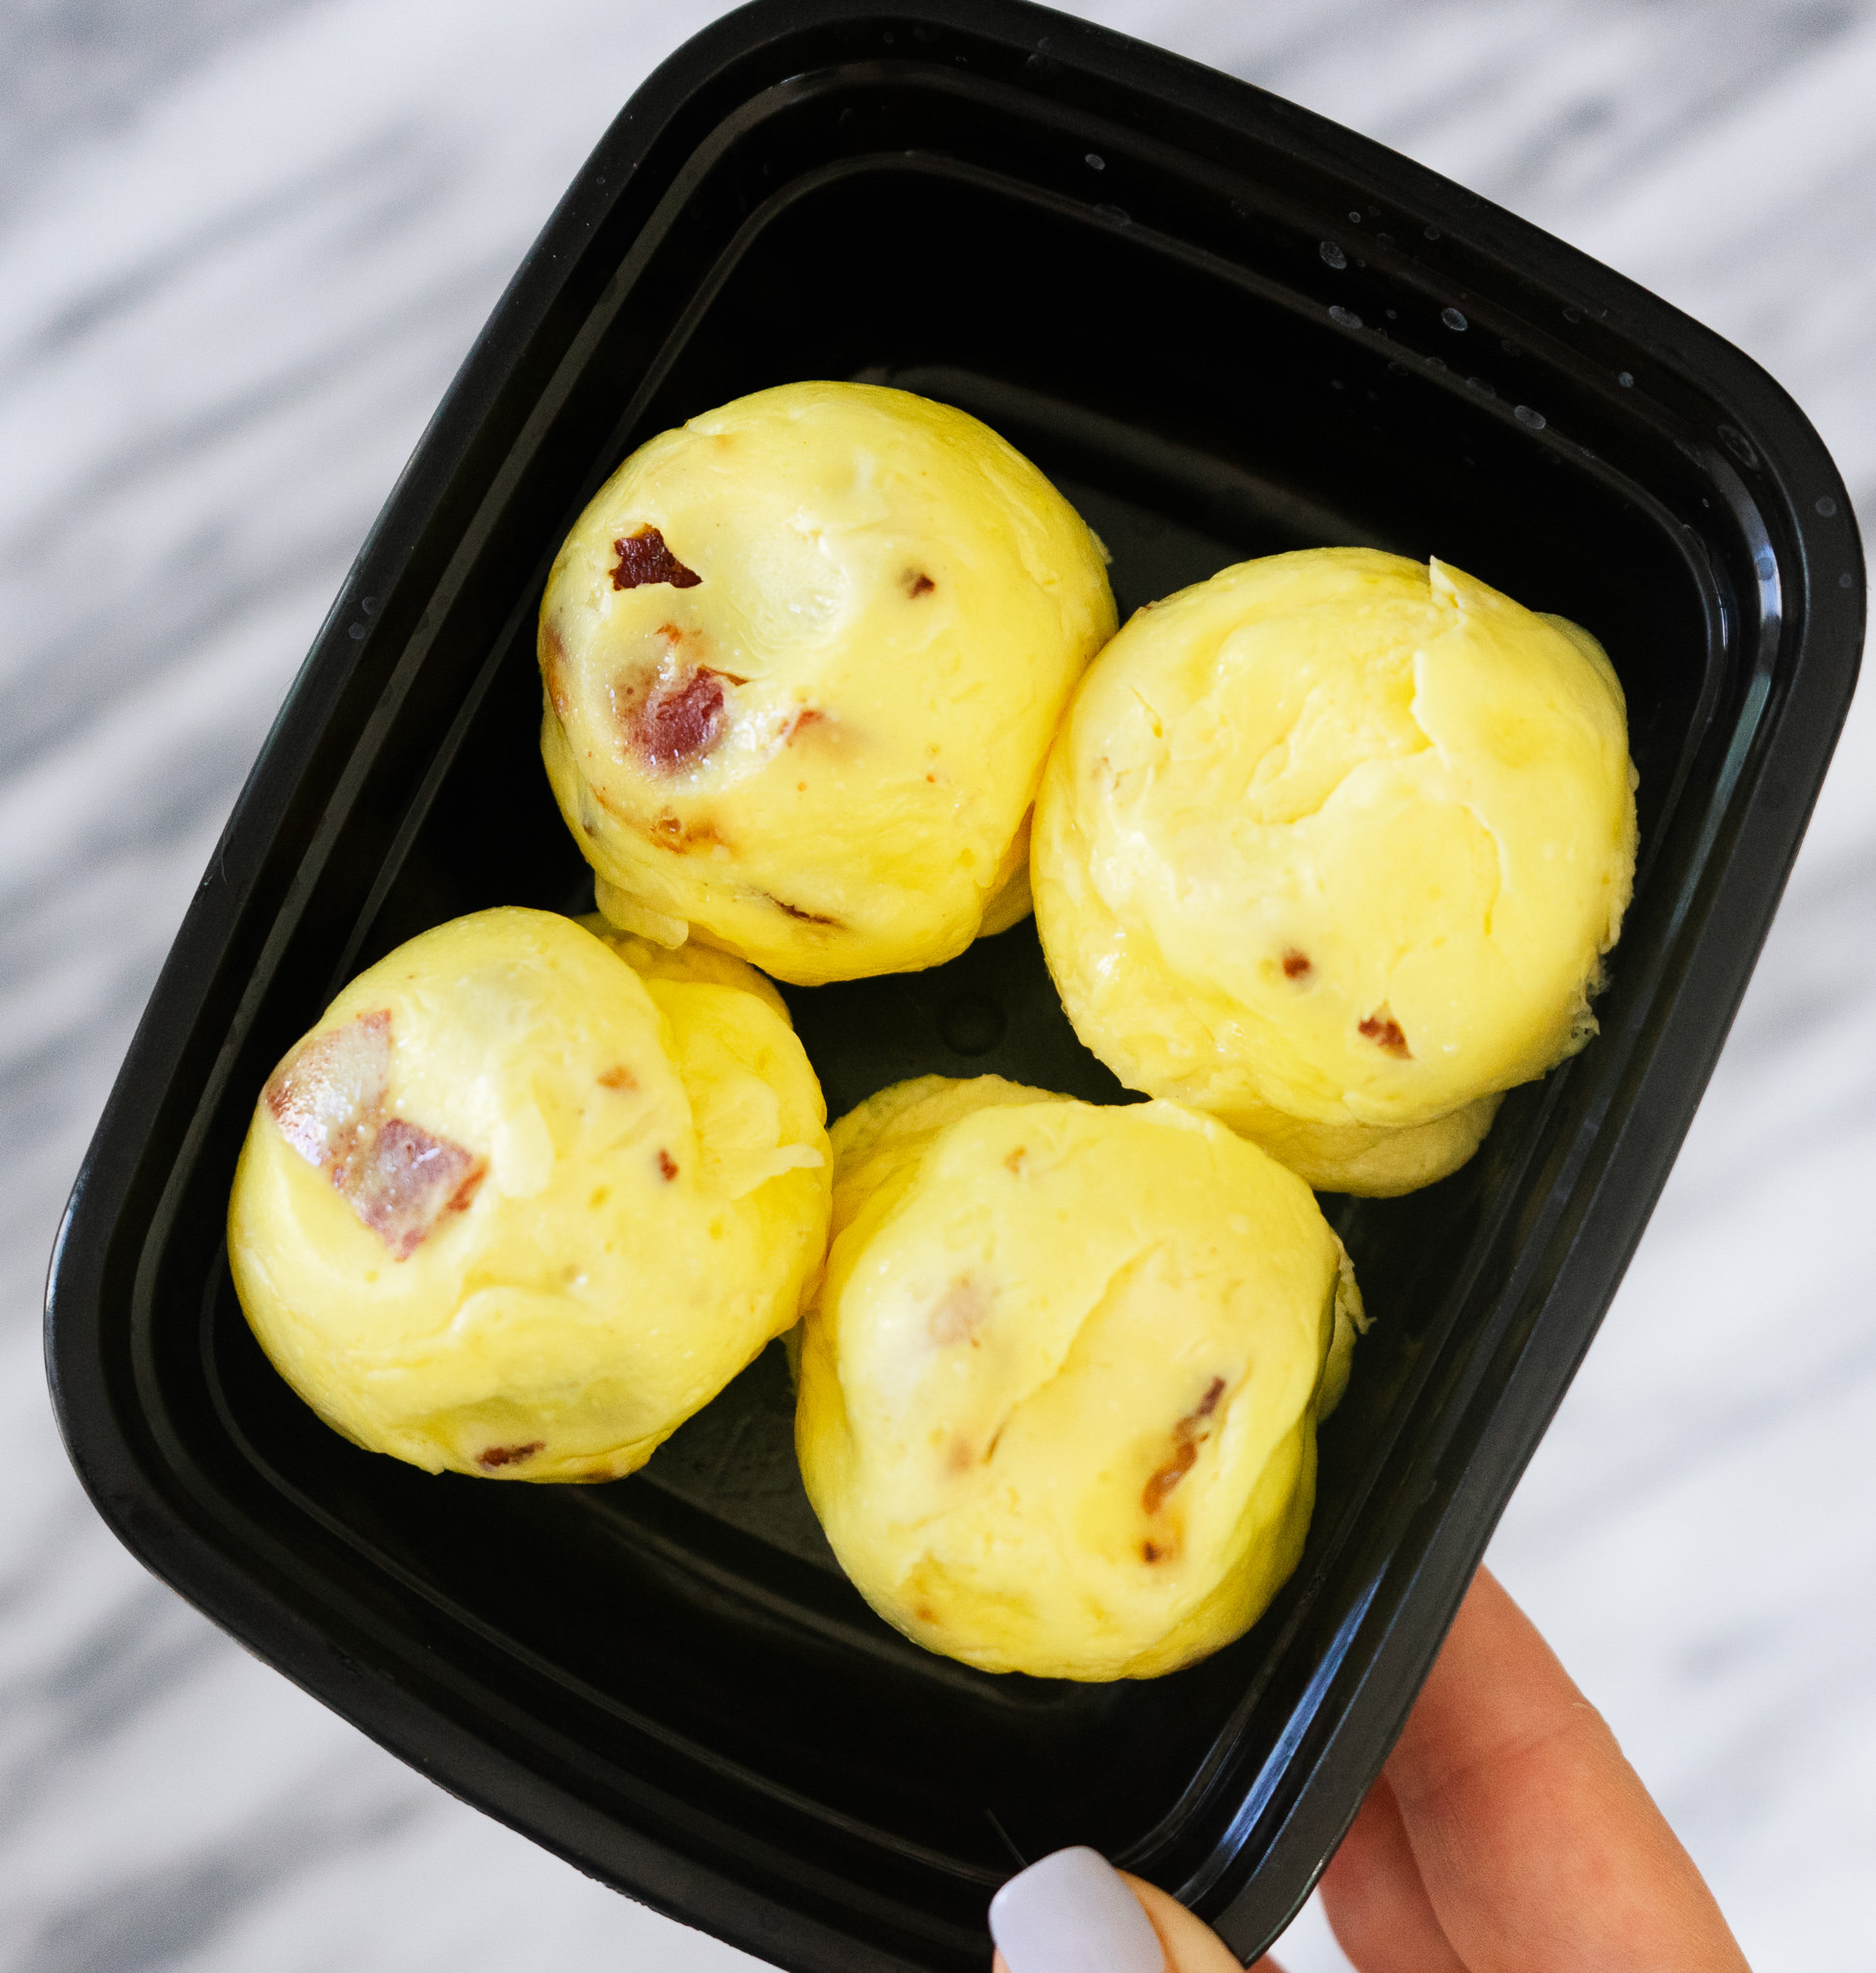 If you love the Starbucks sous vide egg bites you need to try making these copycat Starbucks eggs bites at home! These simple, delicious, and low carb egg bites can be easily made in the instant pot in less than 30 minutes.